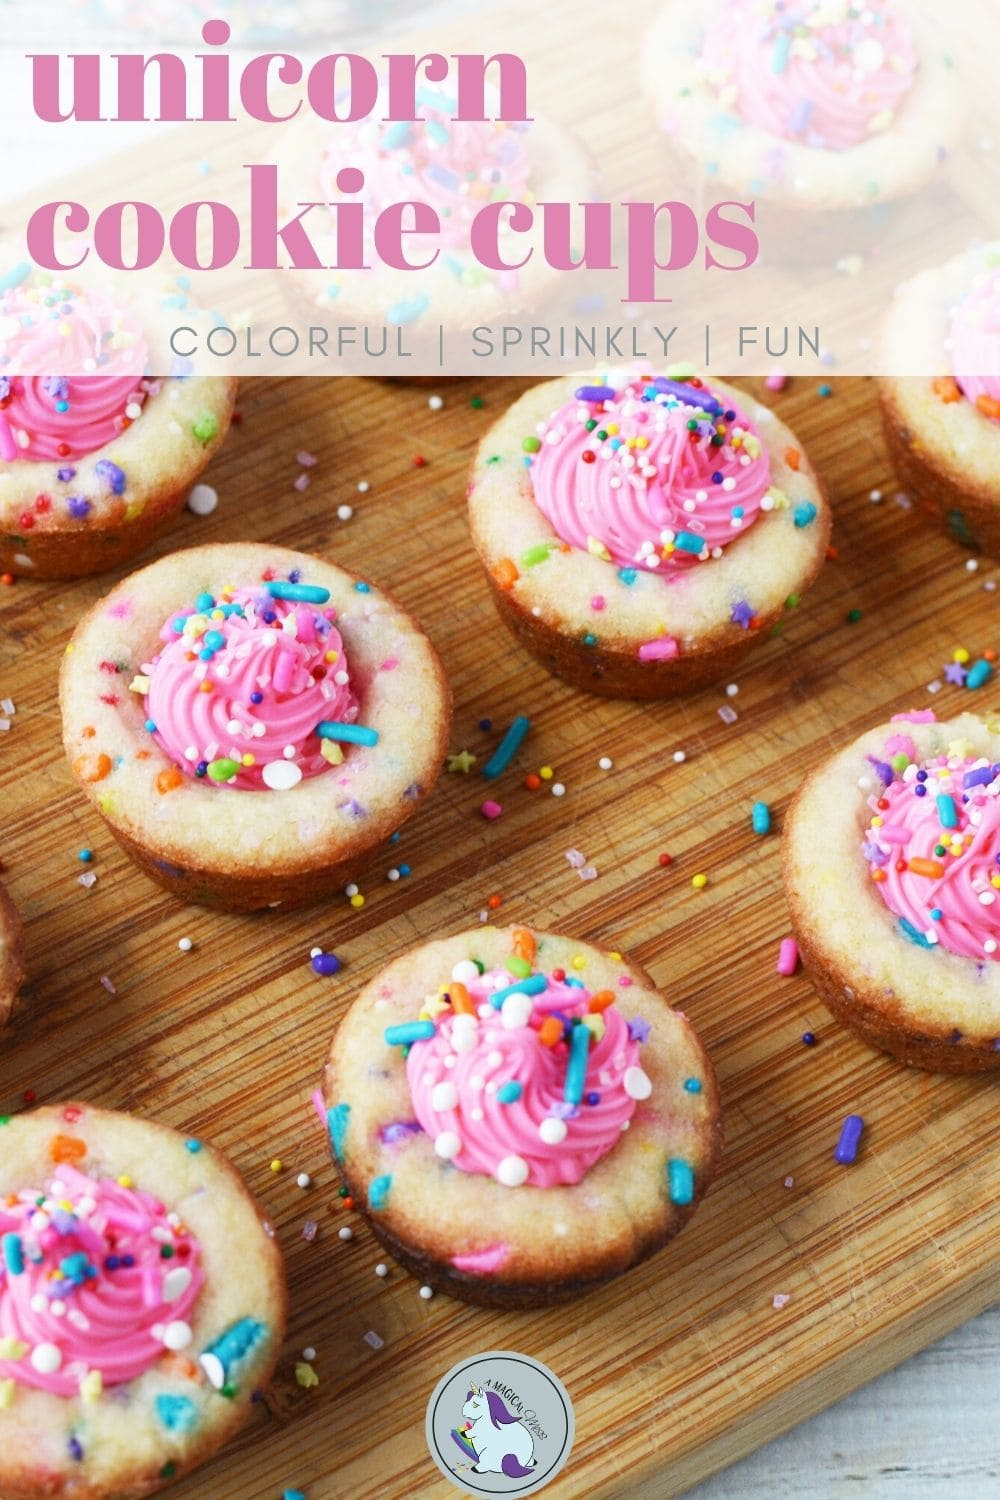 cookies with pink filling on a board